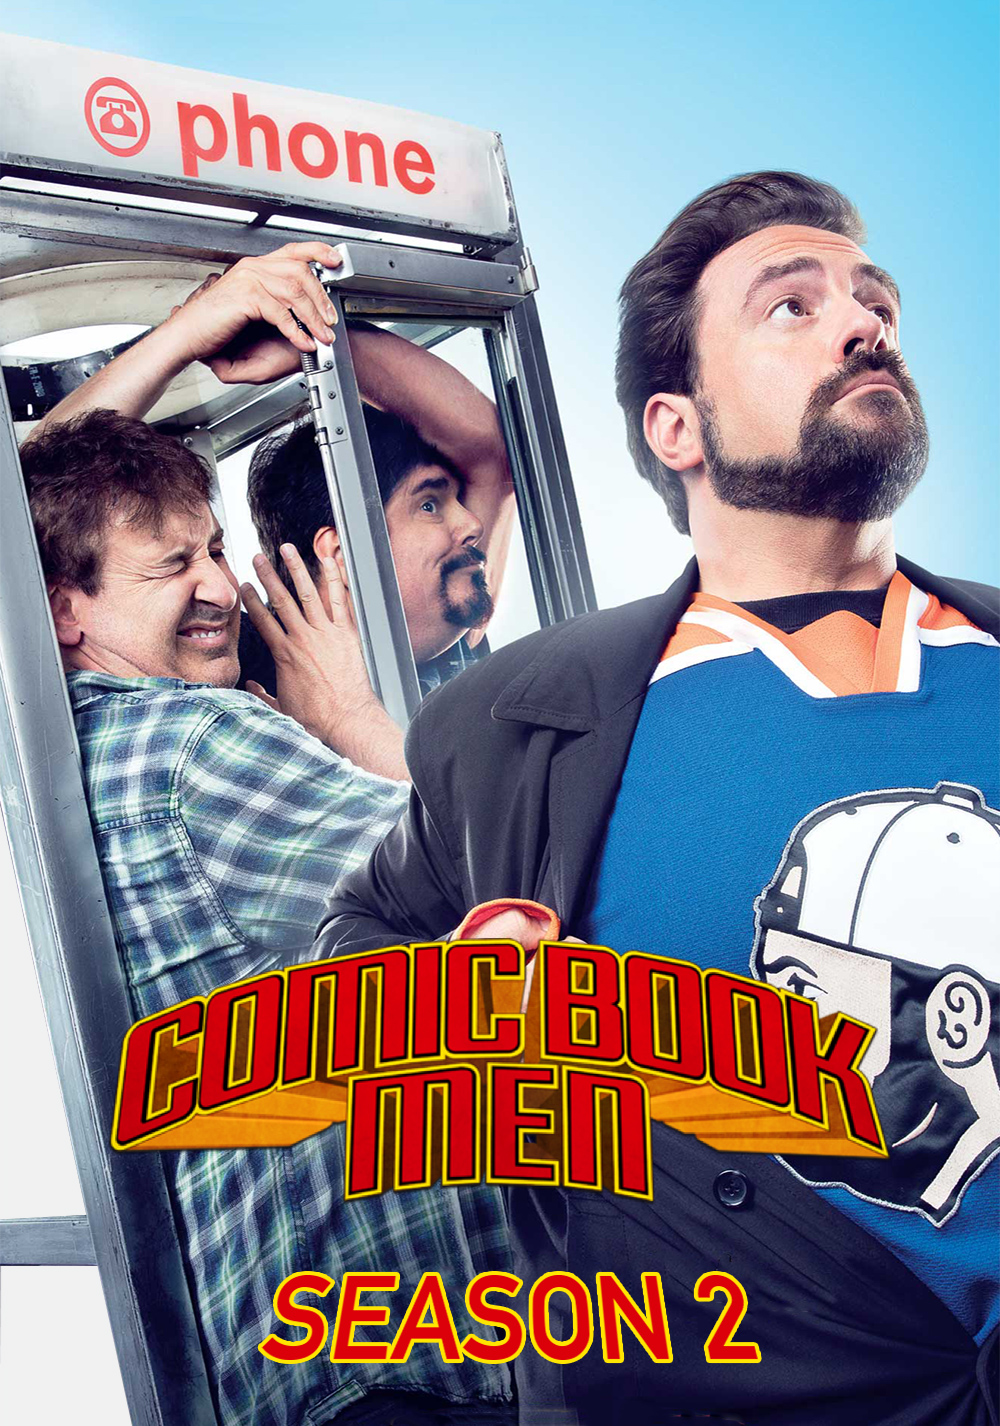 comic-book-men-5a8862d6a88d9.jpg